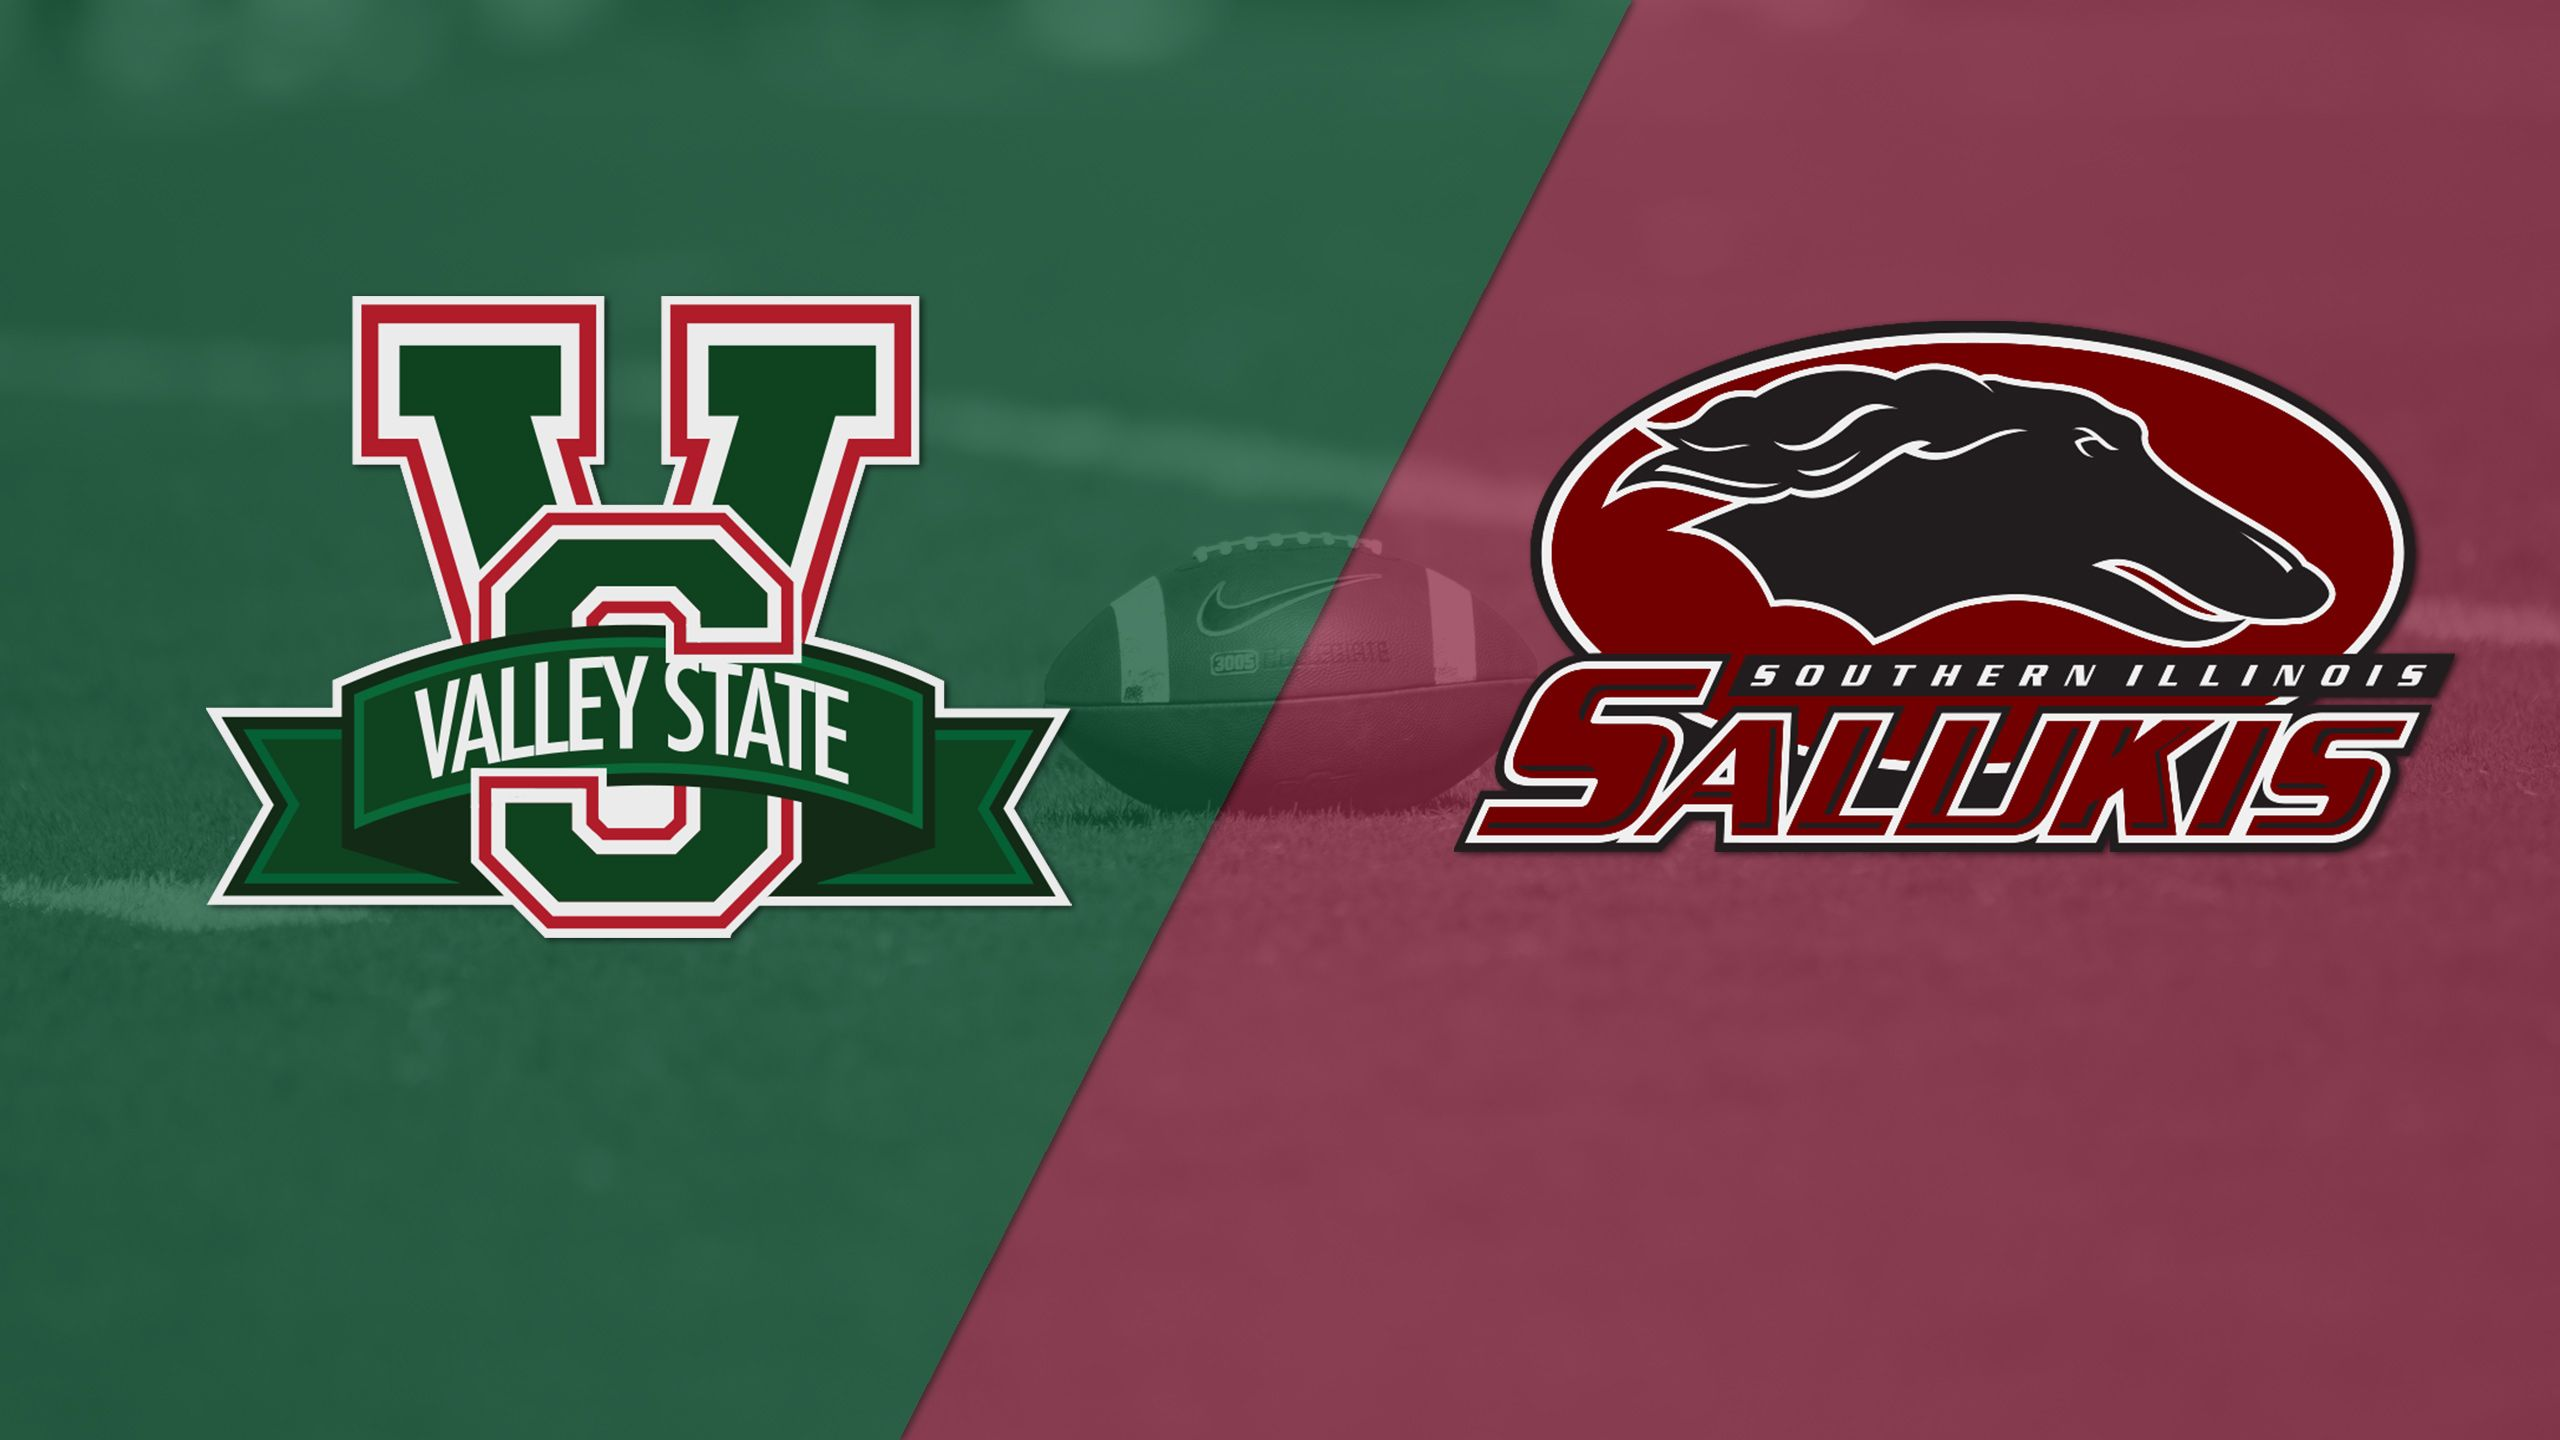 Mississippi Valley State vs. Southern Illinois (Football)